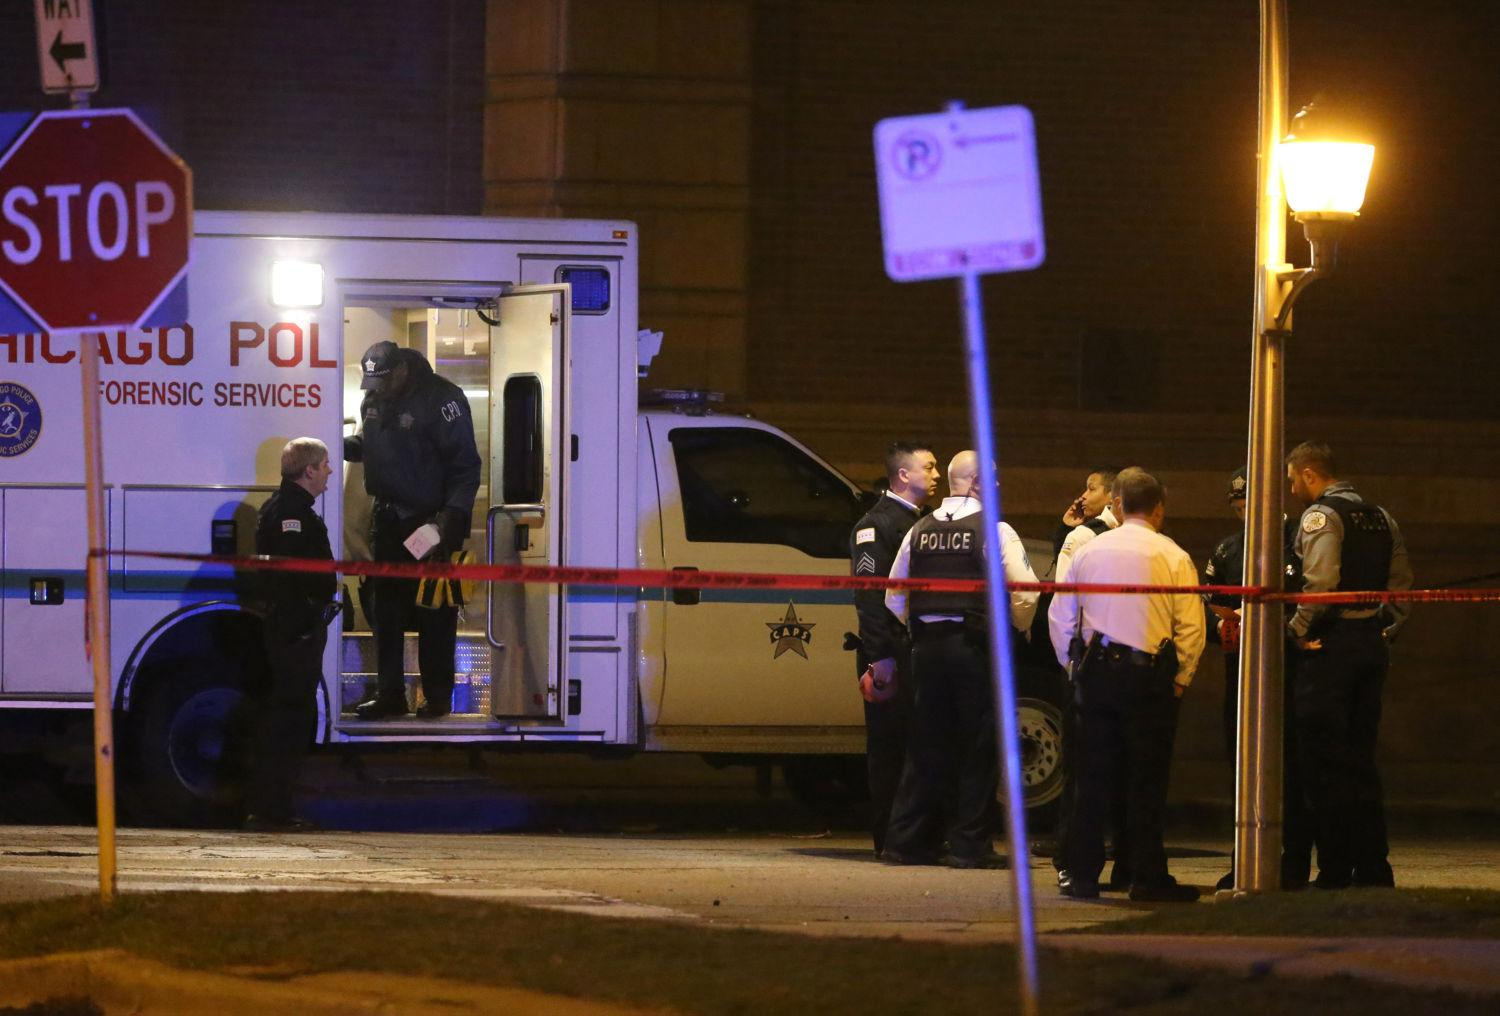 Chicago police officers work on the scene where three officers were shot in the 3700 block of West Polk Street on March 14 in the Homan Square neighborhood of Chicago.